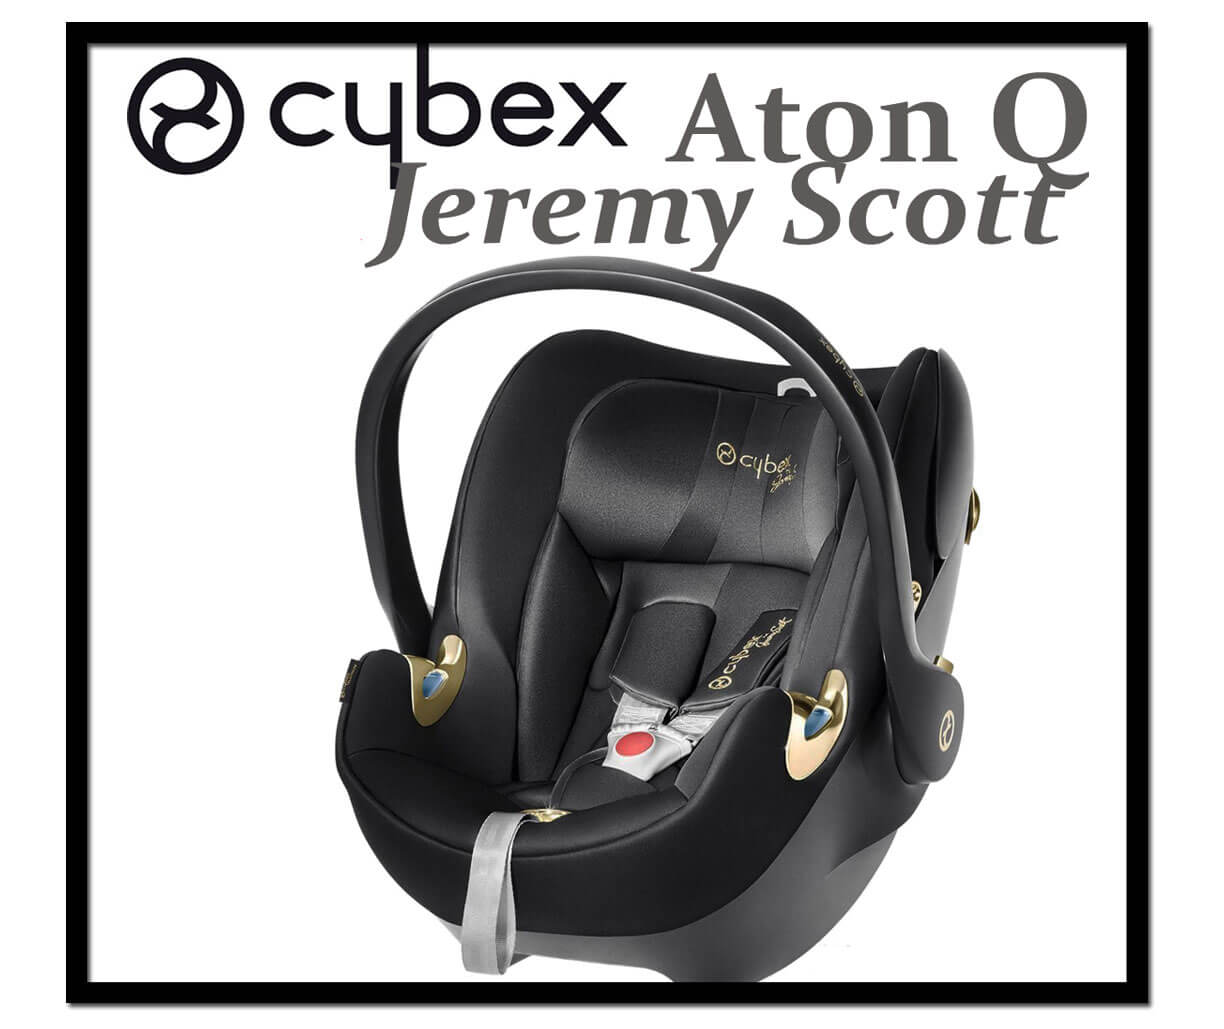 cybex aton q by Jeremy Scott